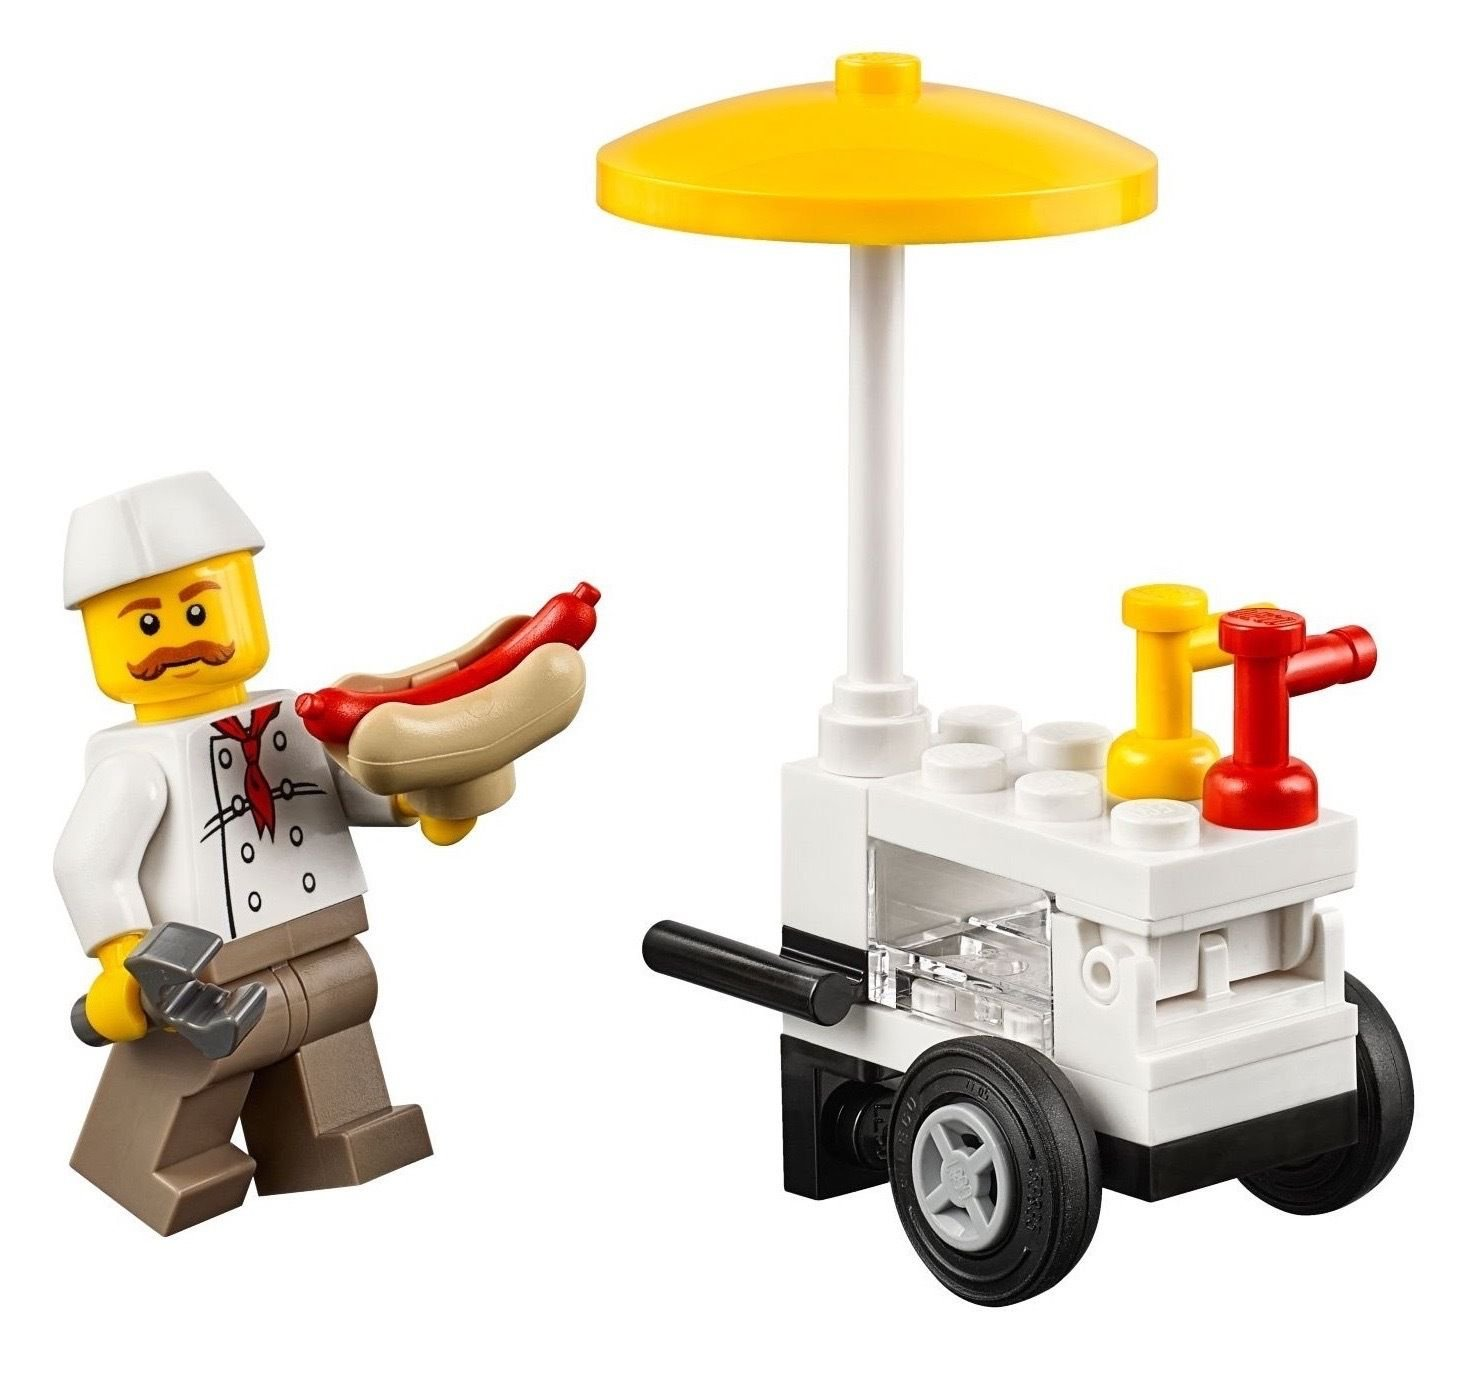 LEGO Hot Dog Vendor  Cart Minifigure [Loose] by LEGO